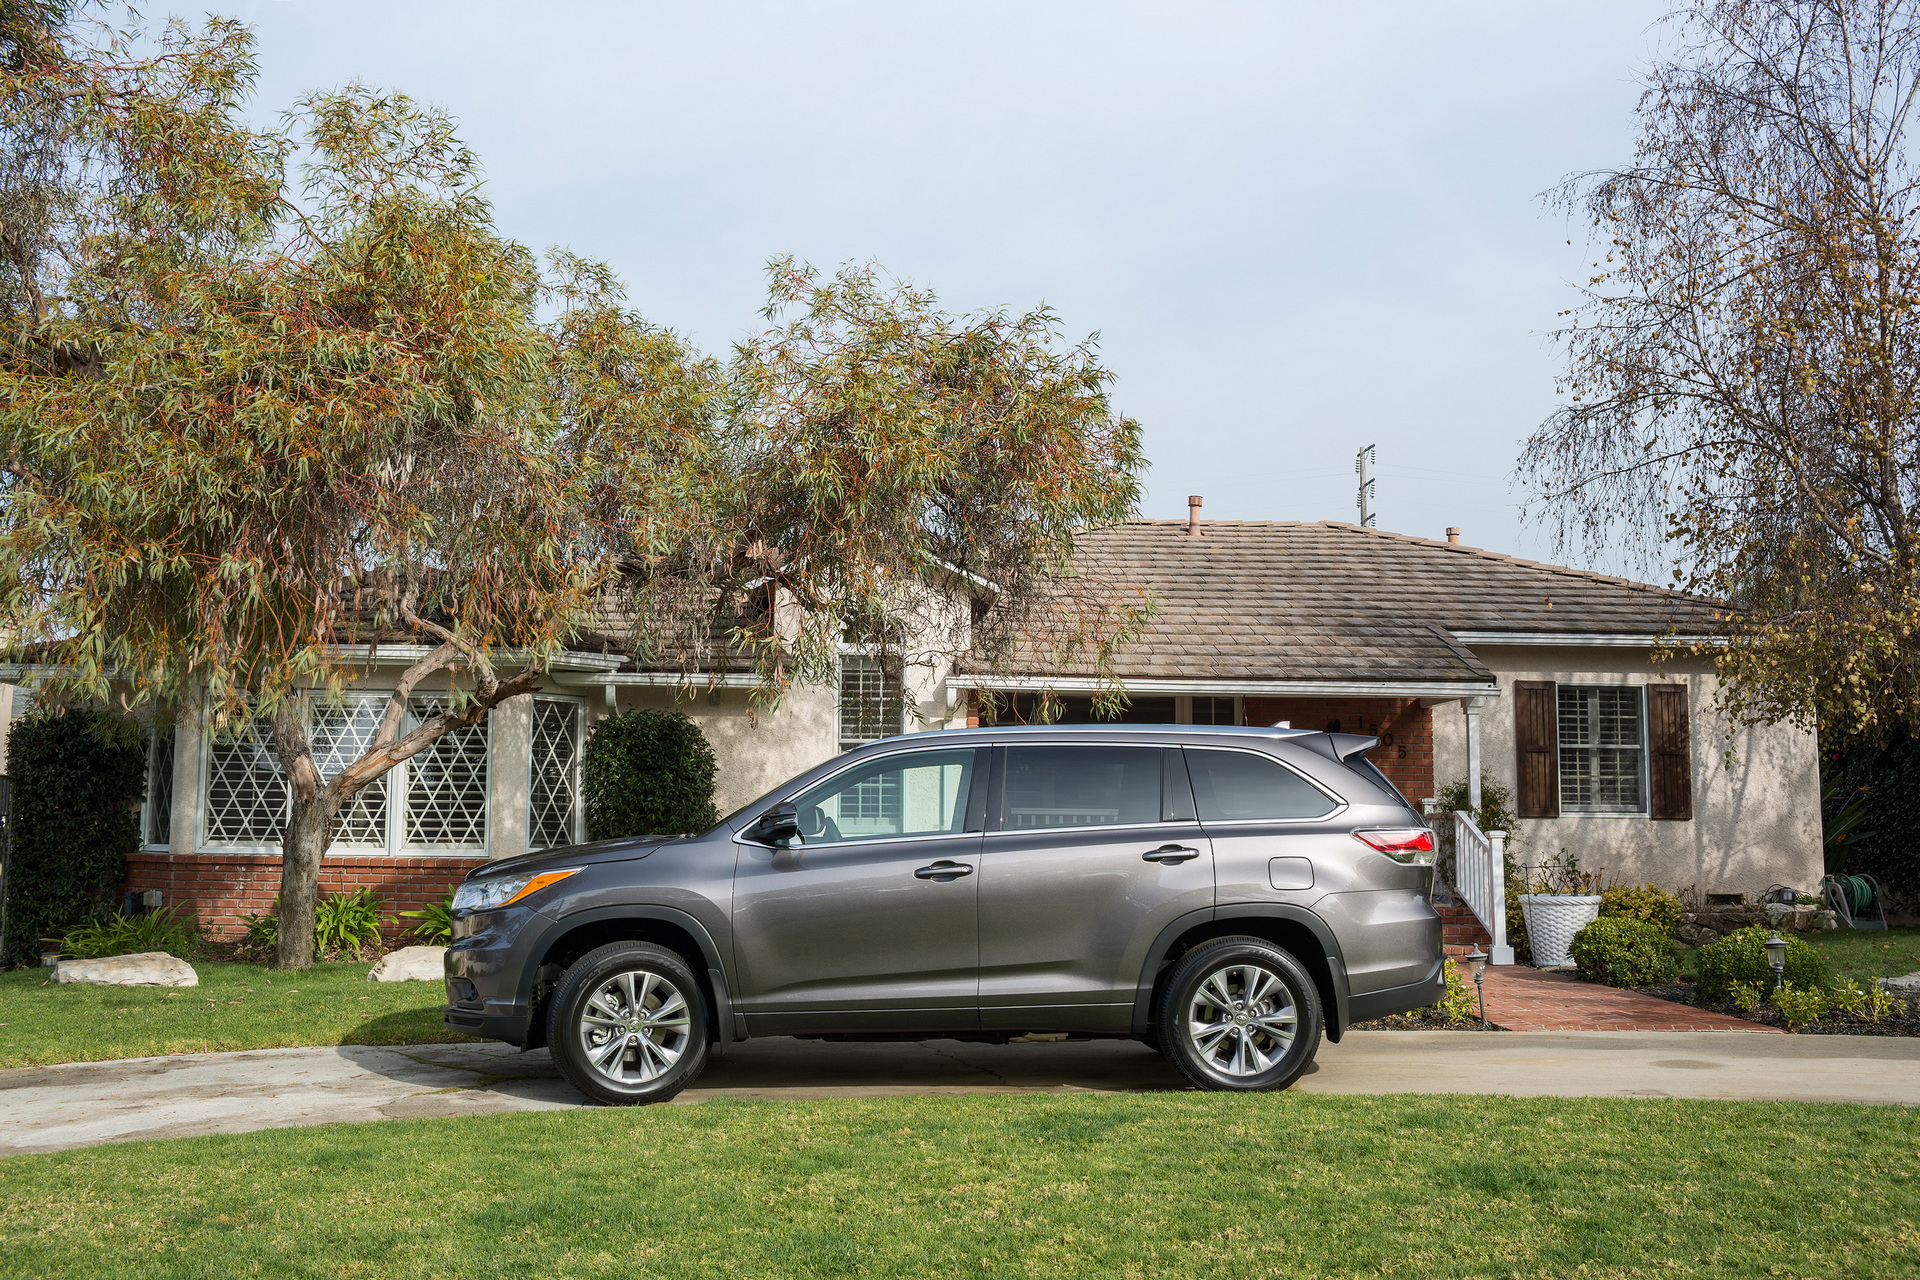 Carrrs Auto Portal Trend Rating The Most Affordable Suvs With 3rd Row Seating 2016 Toyota Highlander Motor Corporation